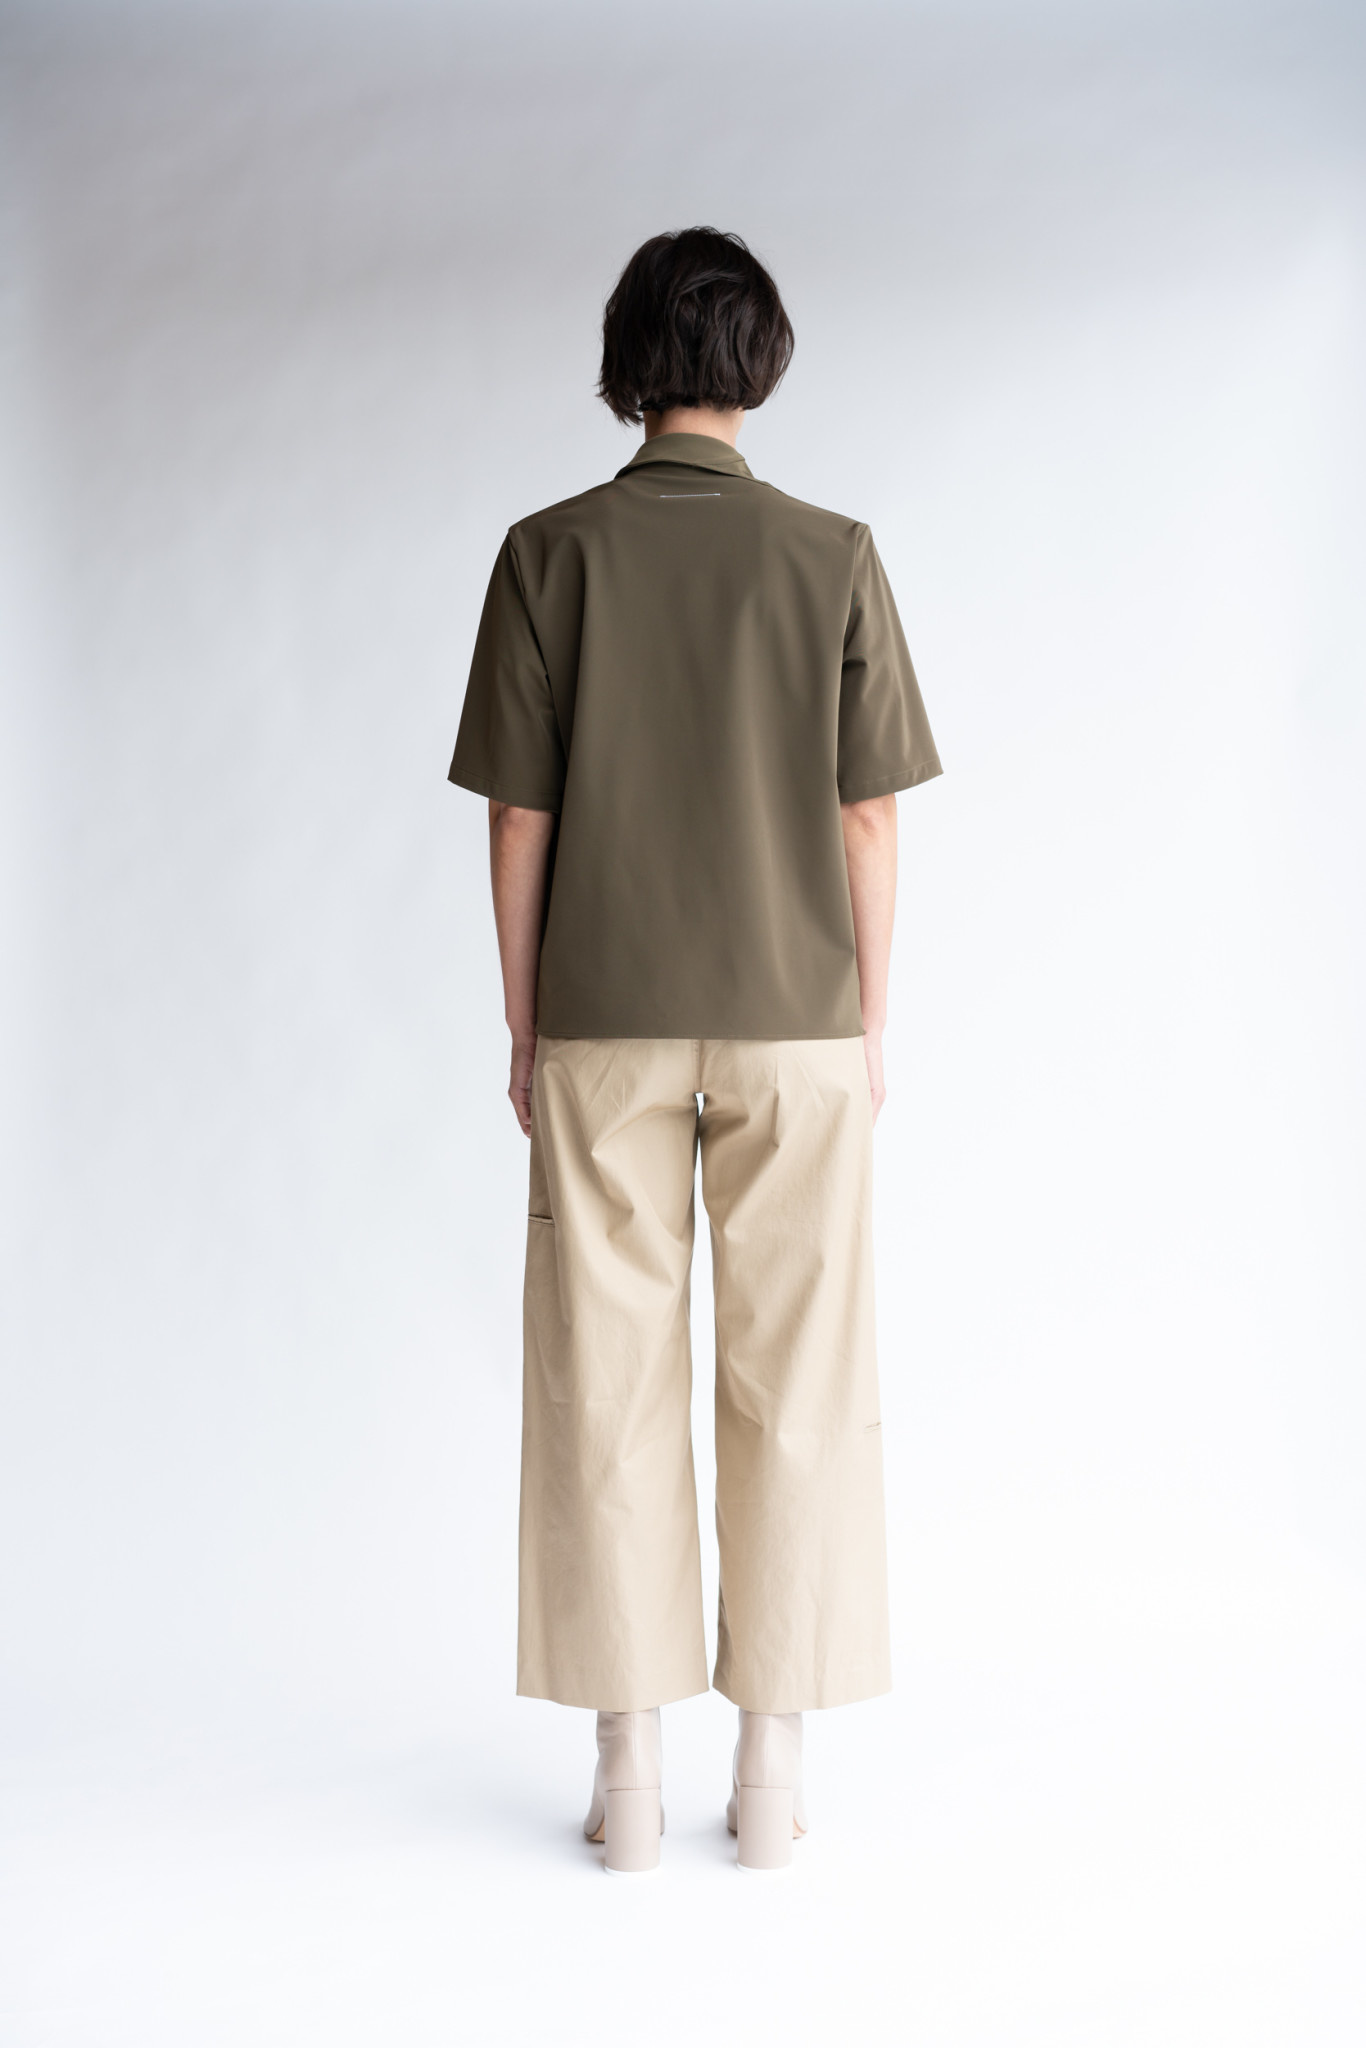 MM6 MAISON MARGIELA Double Knee Trouser in Camel Twill